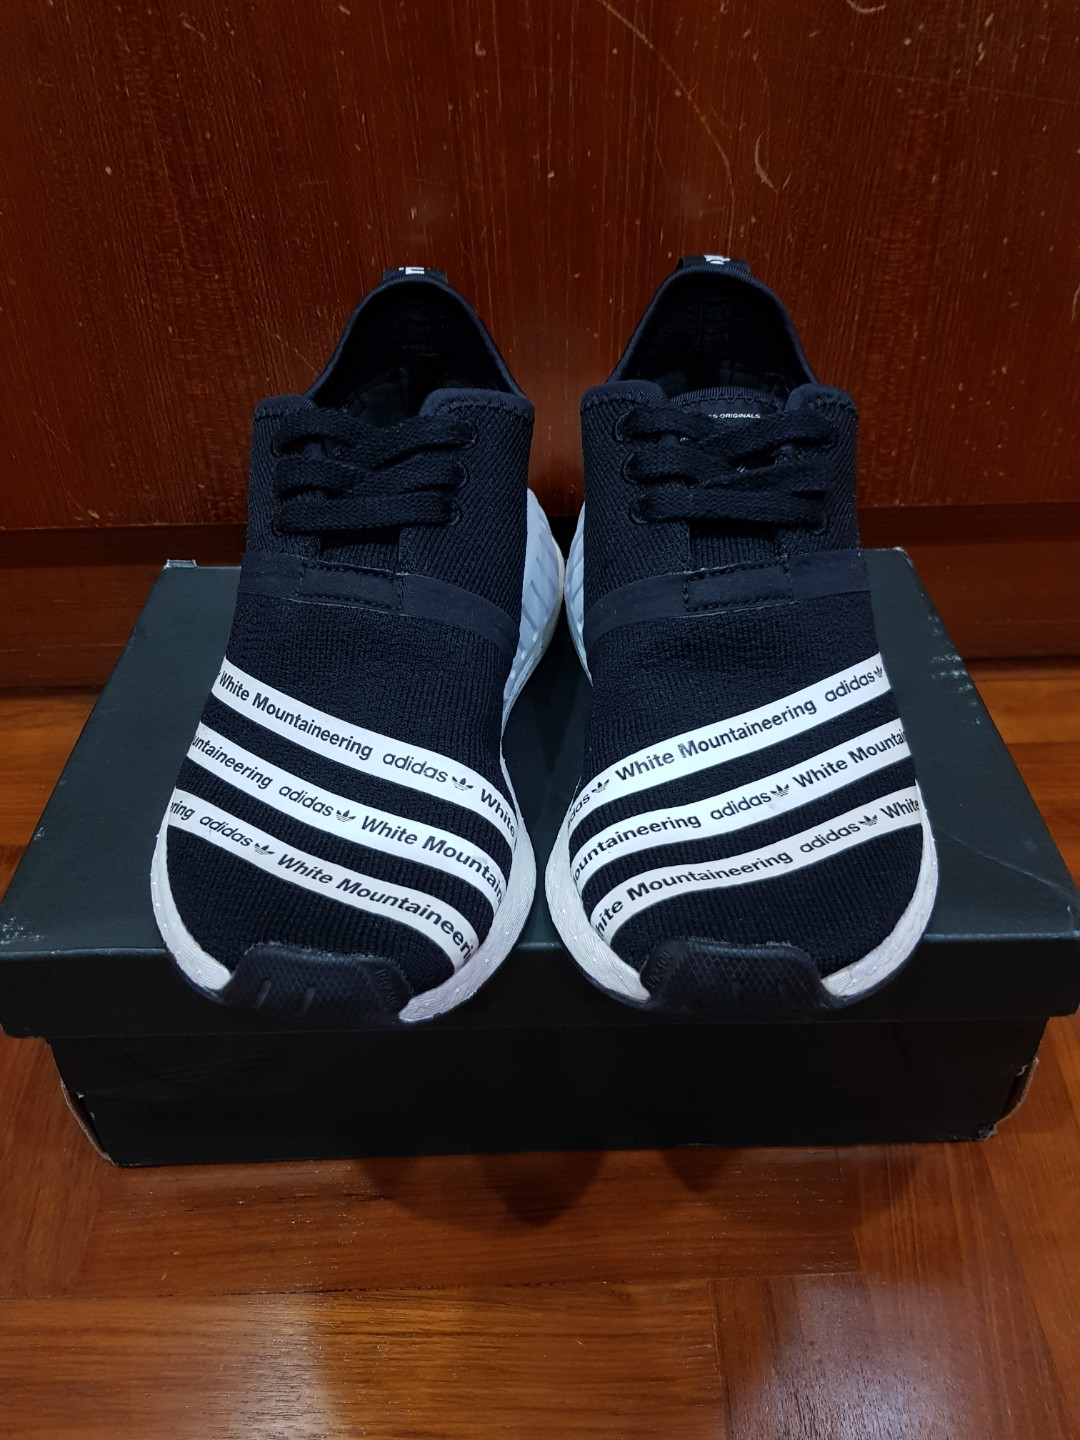 73f8c7287 ADIDAS NMD R2 WHITE MOUNTAINEERING